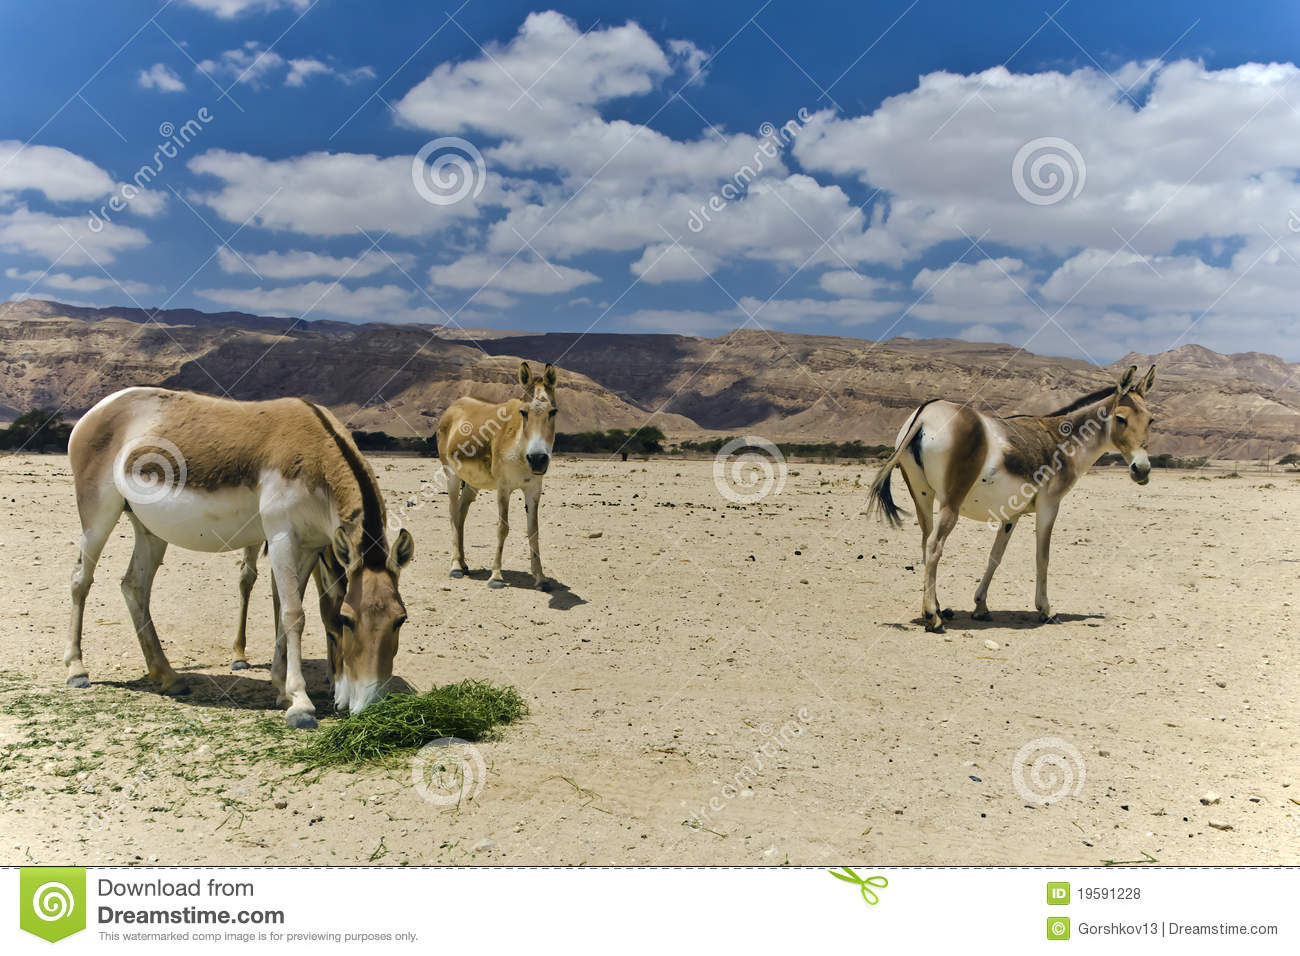 https://thumbs.dreamstime.com/z/onager-ass-negev-desert-israel-19591228.jpg